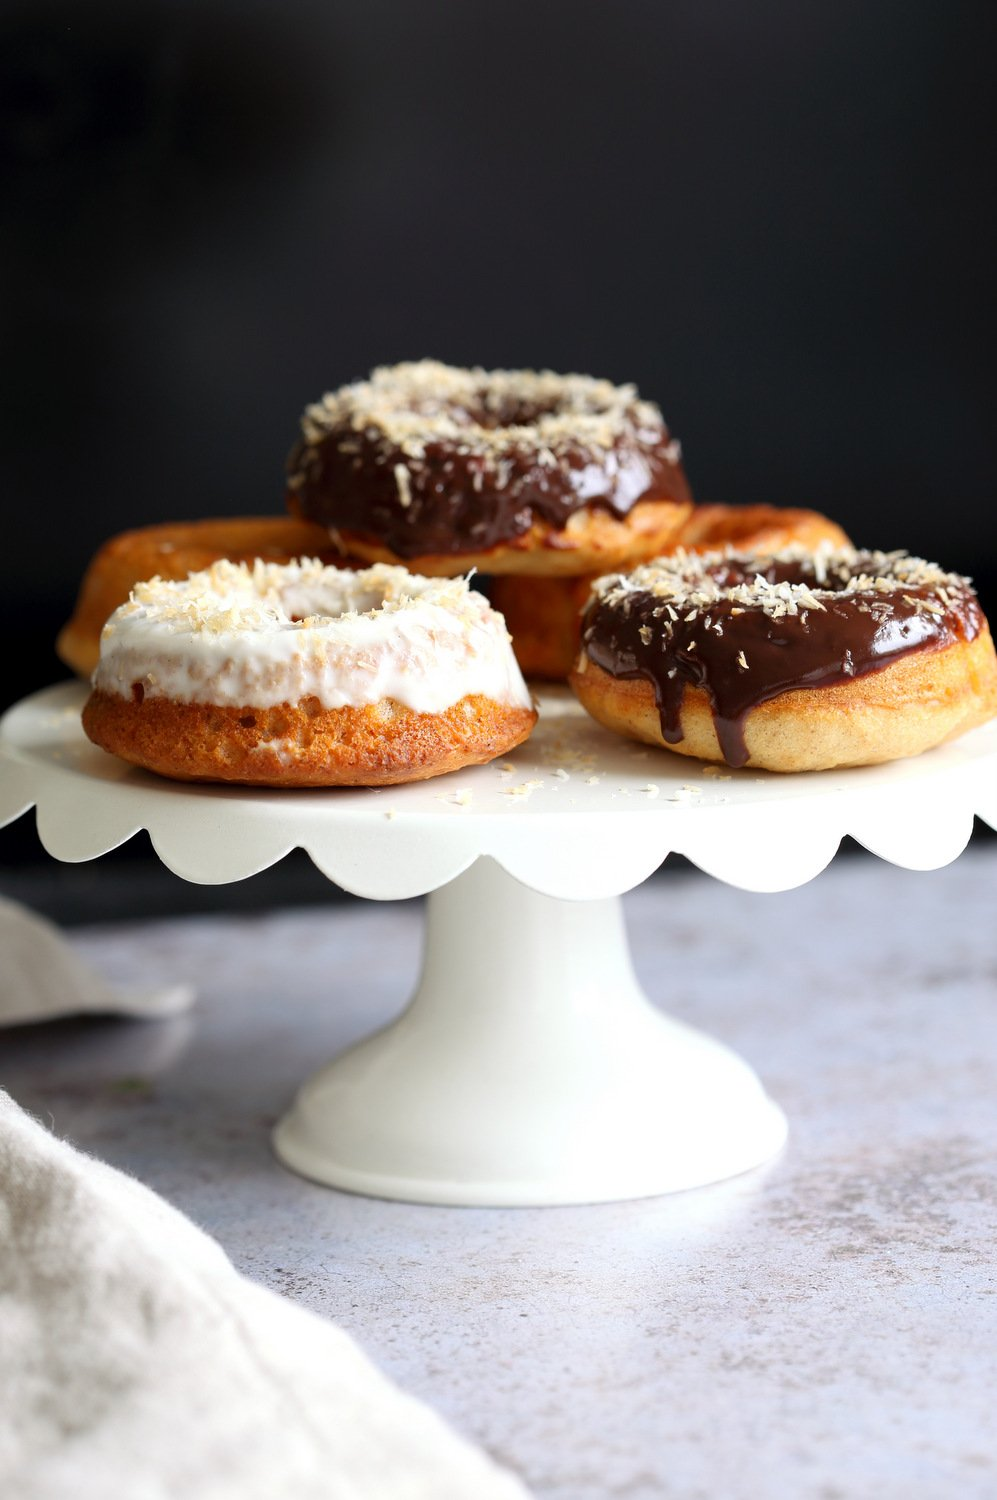 Vegan Banana Donuts with vanilla and chocolate icing on white cake stand